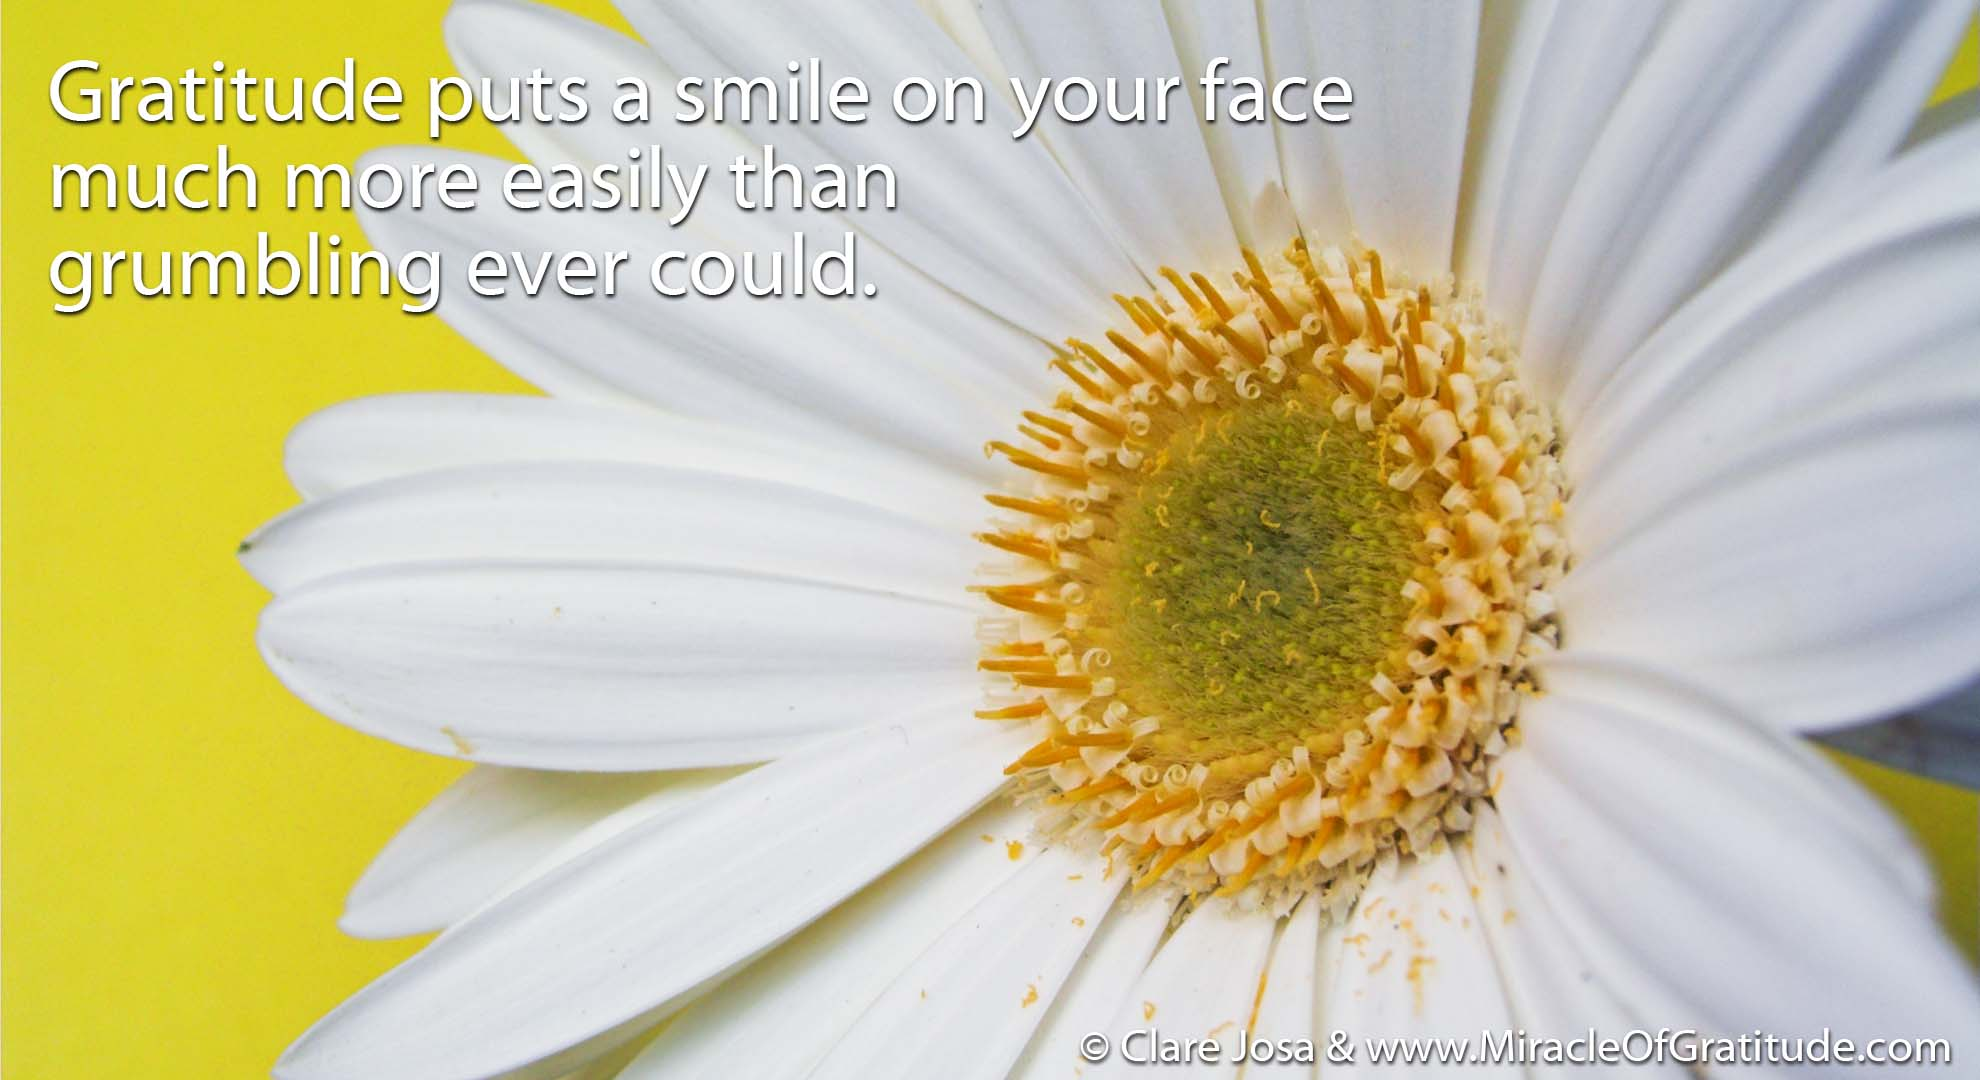 Putting A Smile On Your Face Download This Week S Gratitude Screen Saver Desktop Wallpaper